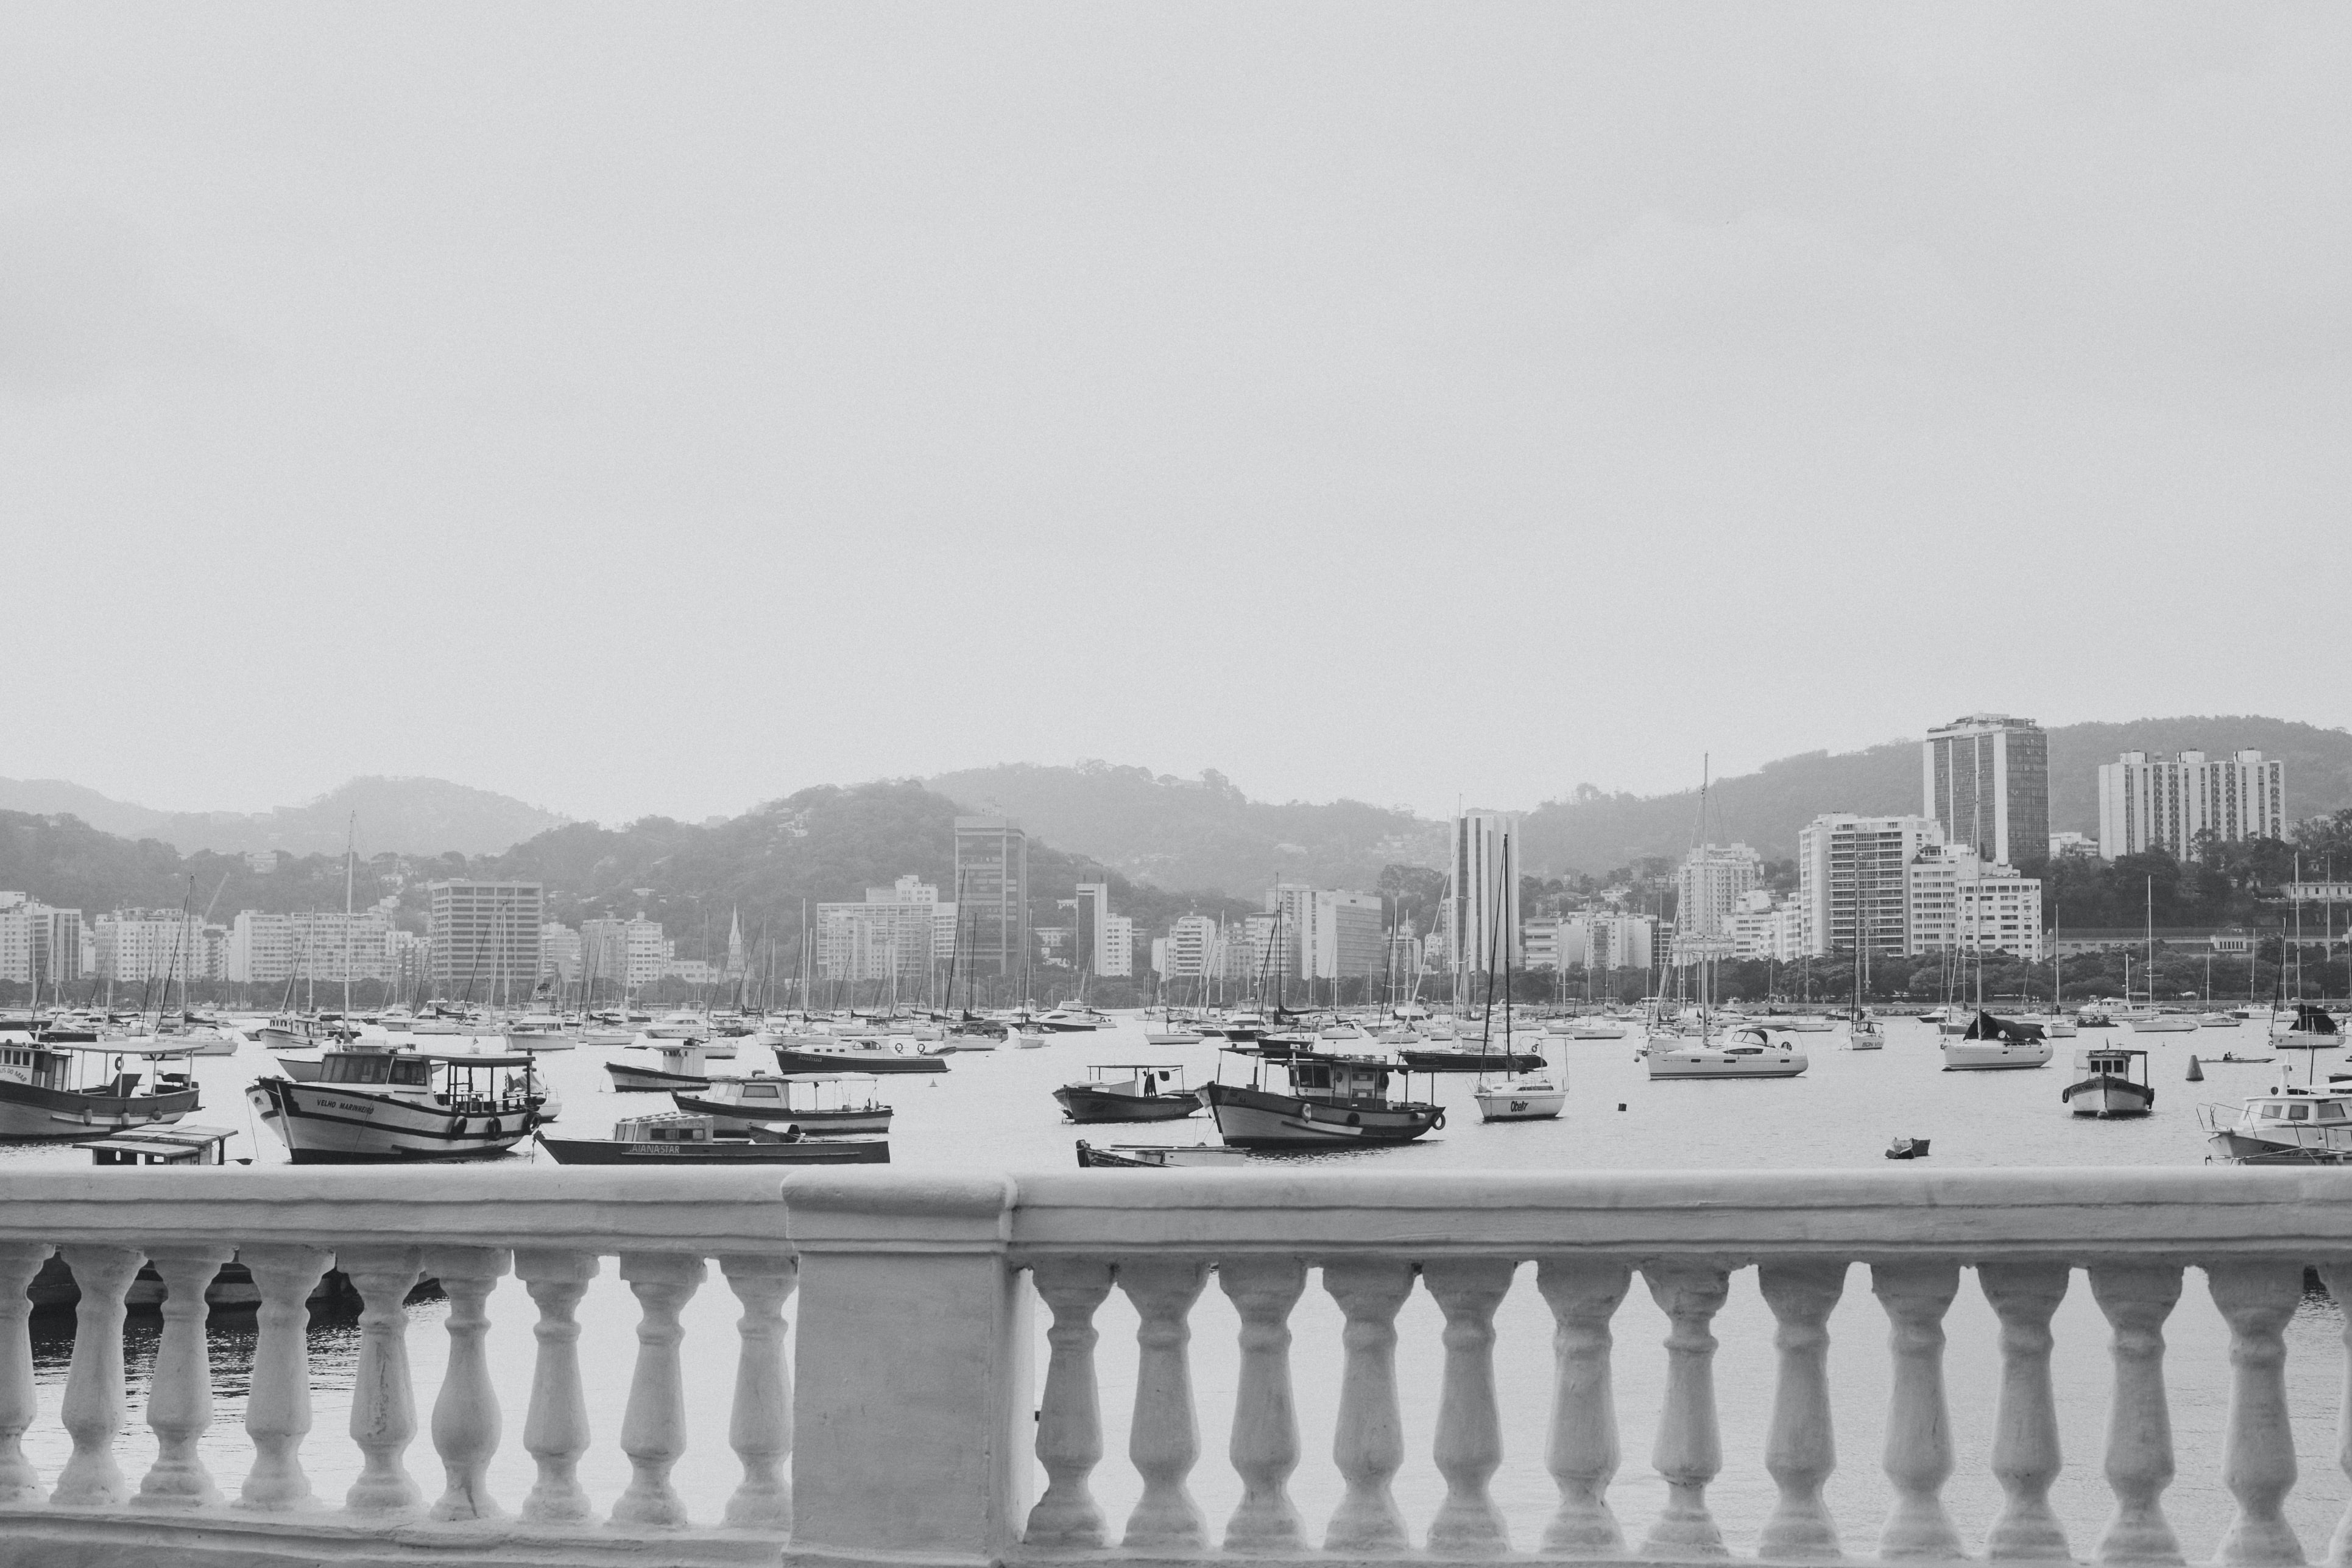 Black and white shot of marina with boats and stone wall with pillars in foreground